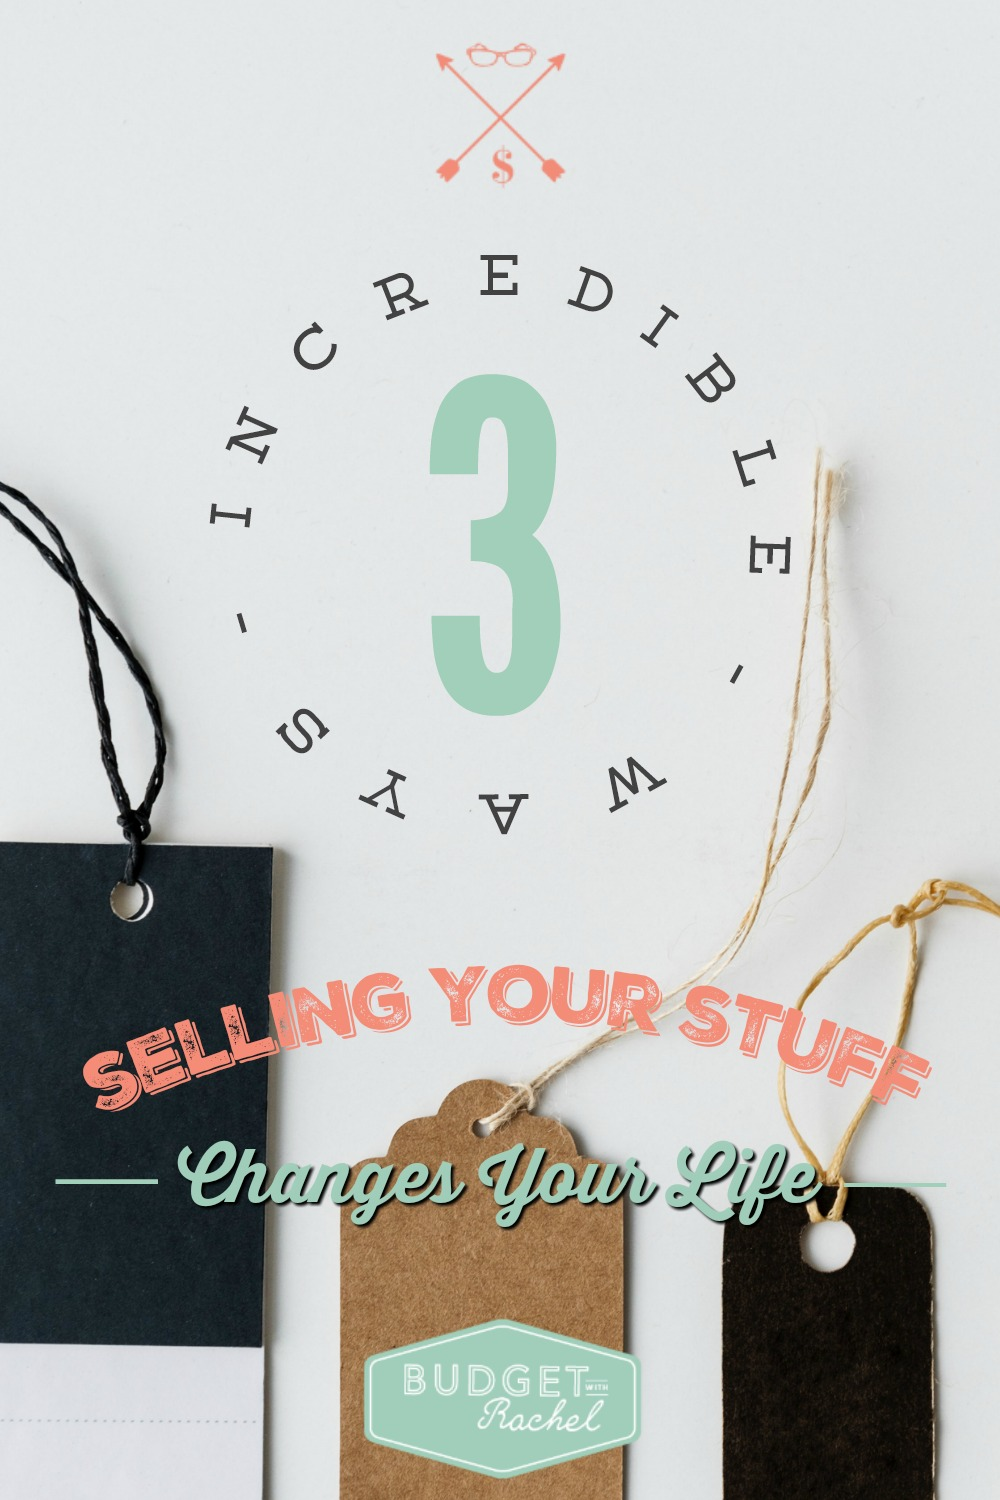 3 Amazing Benefits of Selling Your Stuff. I didn't even realize the potential I had in my home for these changes. After I started selling some of my stuff, I definitely noticed #1 and #3 happening and it was awesome! I didn't think there was much money to be made selling my stuff, but I was wrong! This helped us out big time!!